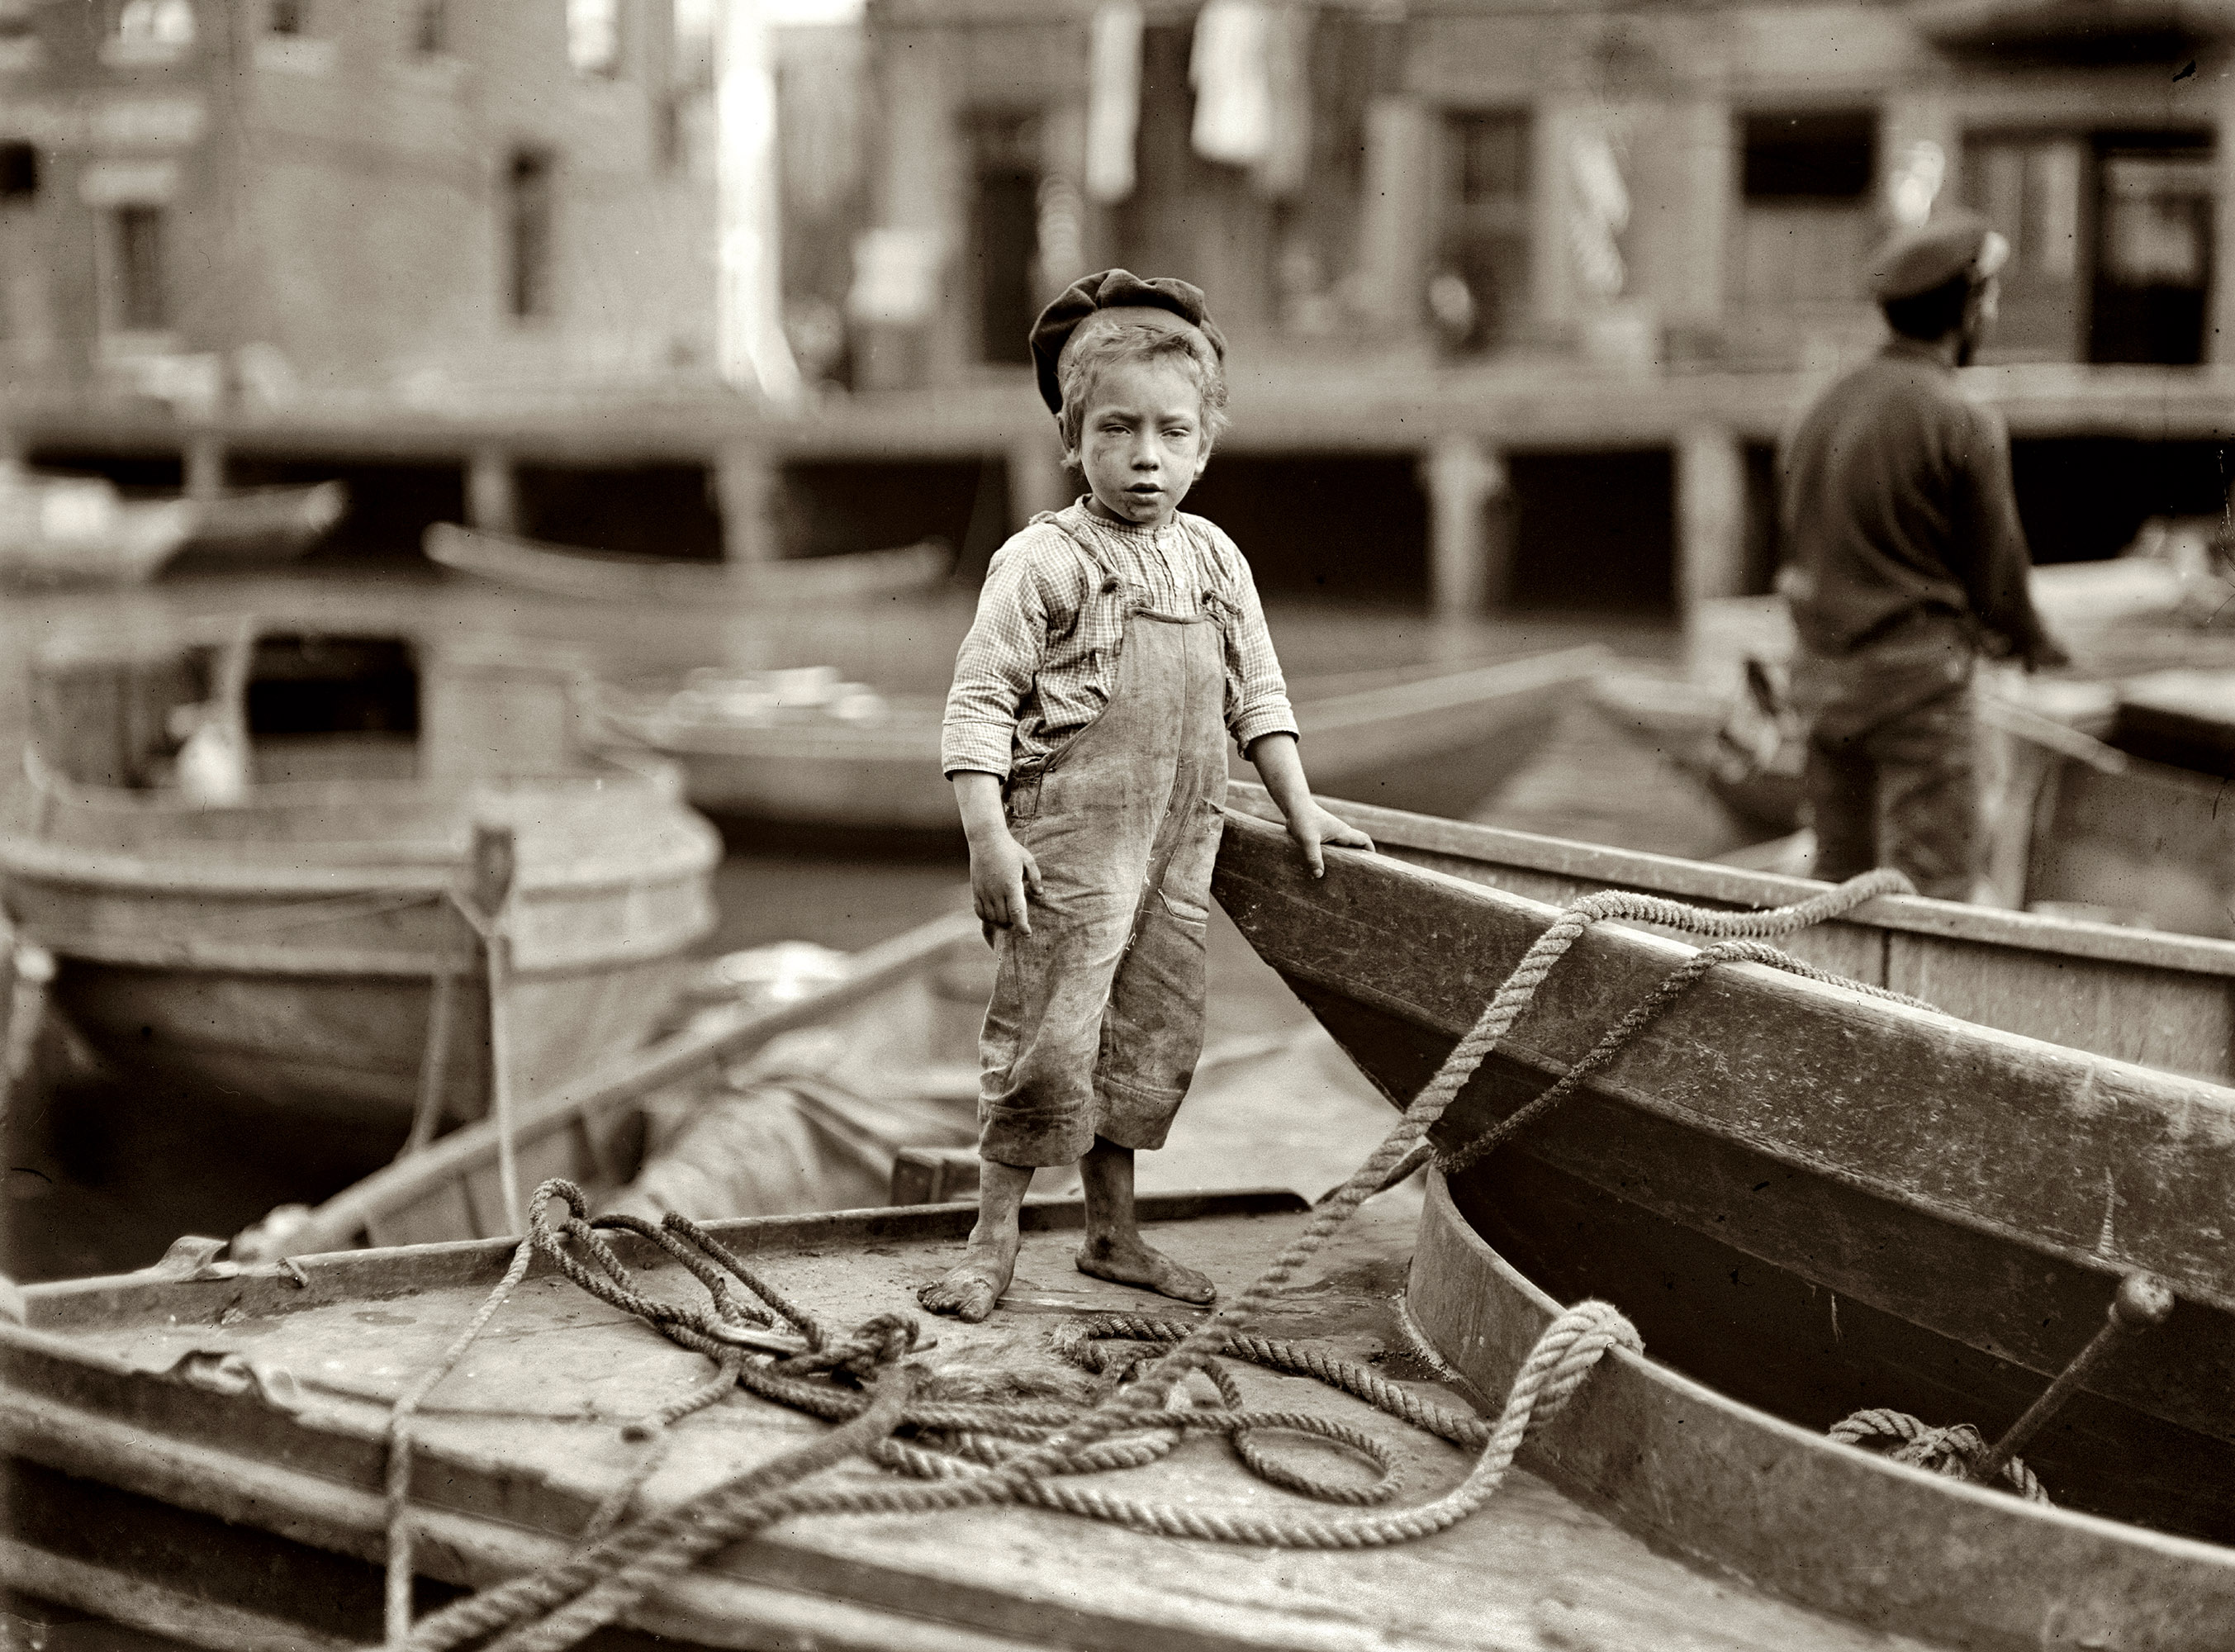 October 1909. Boston.  Truant hanging around boats in the harbor during school hours.